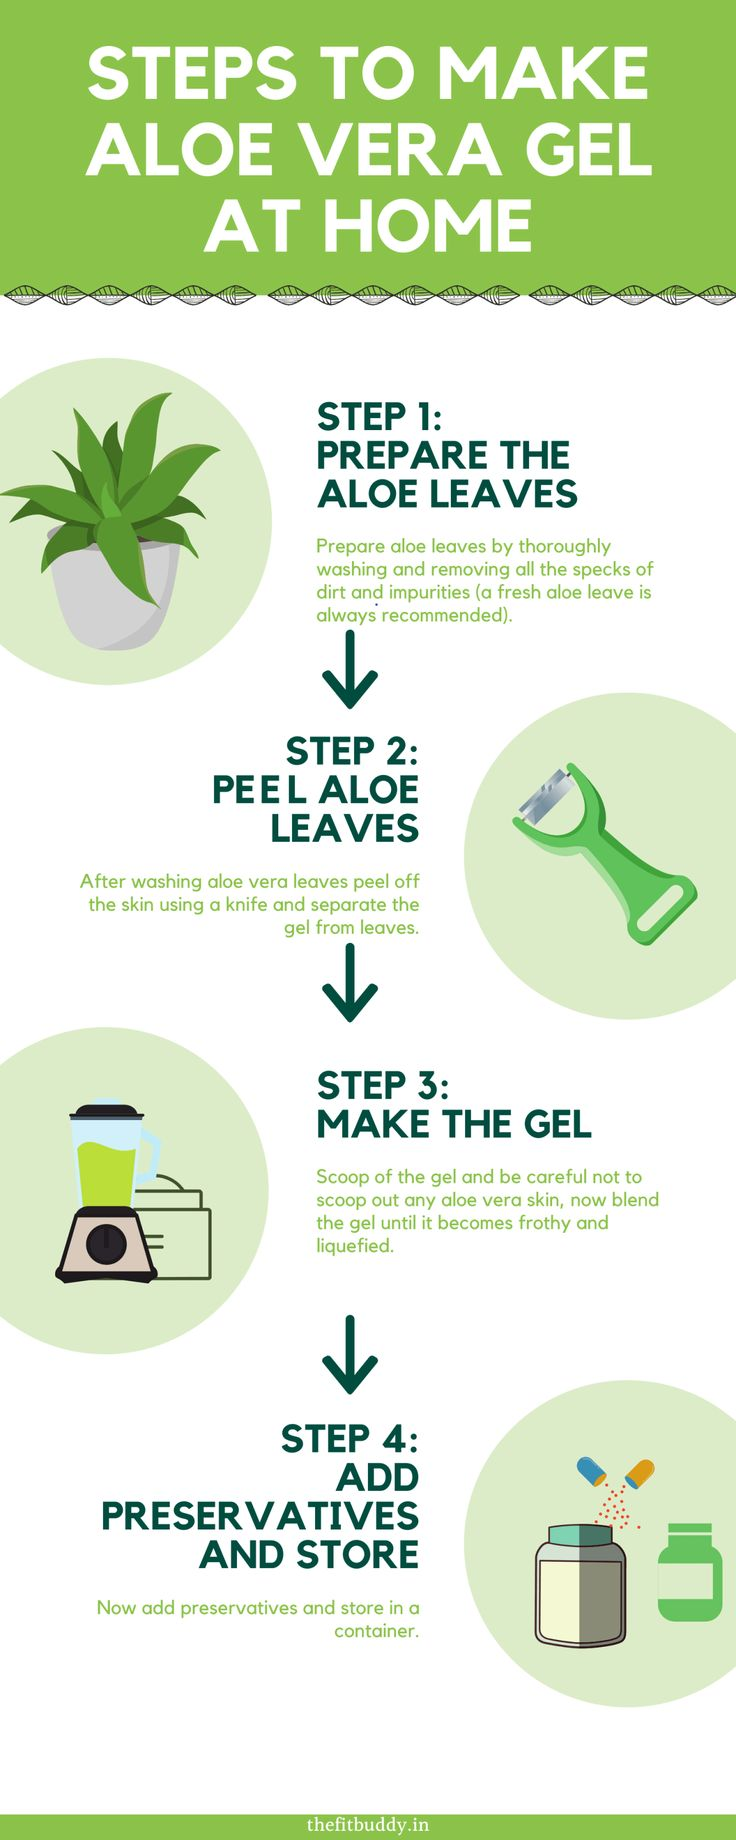 how to make aloe vera gel at home and preserve